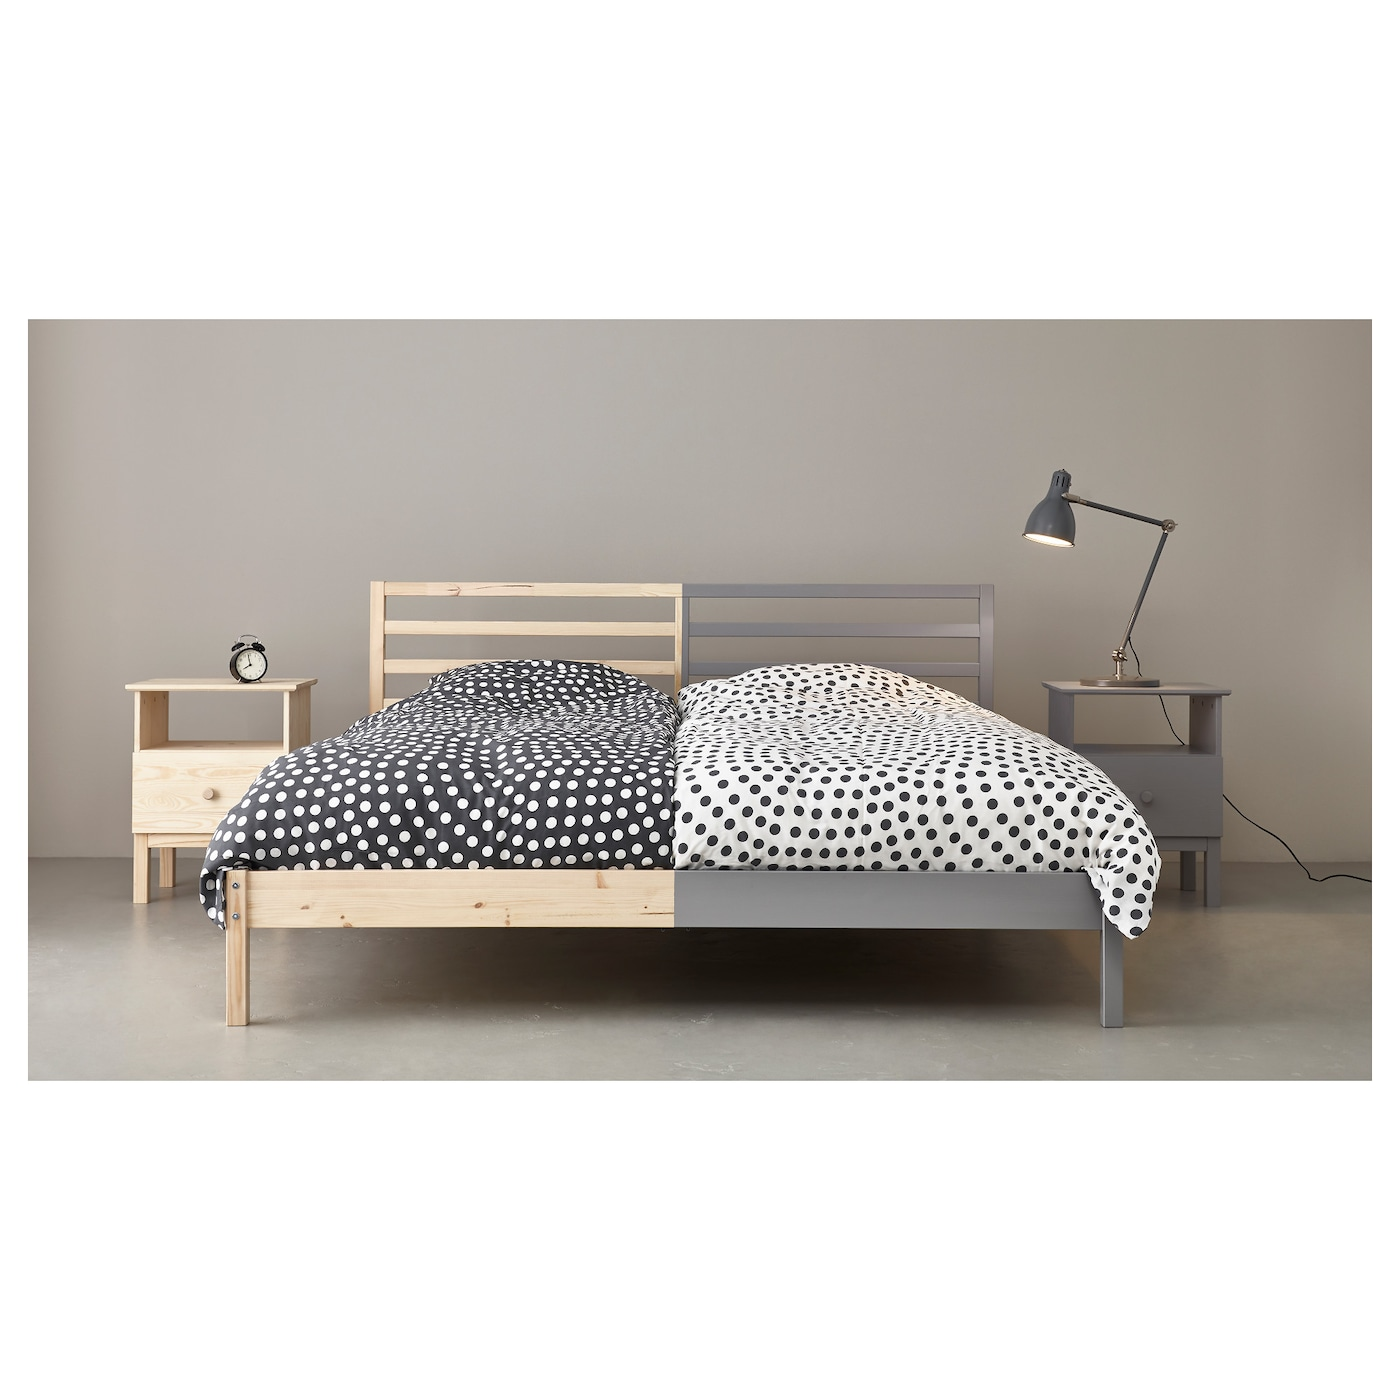 IKEA TARVA bed frame Made of solid wood, which is a hardwearing and warm natural material.